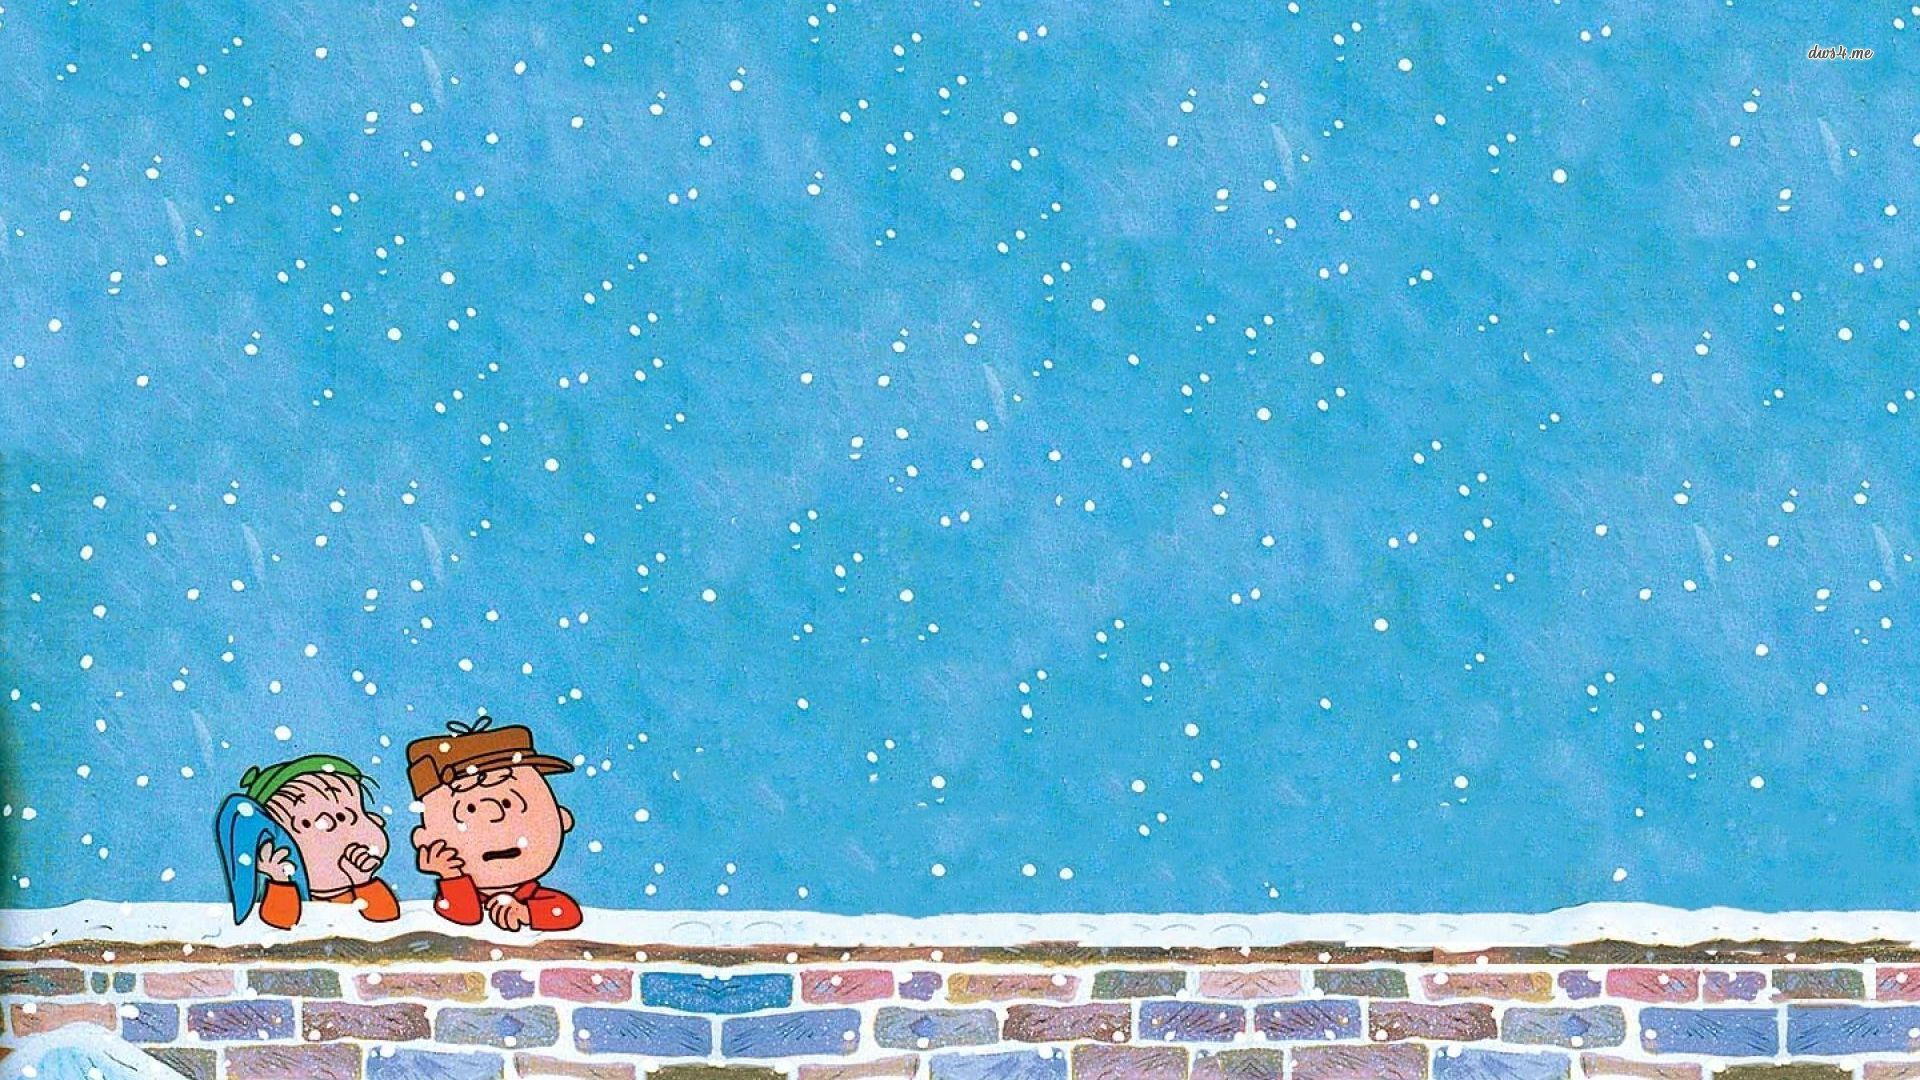 30 Fine Charlie Brown Christmas Tree Wallpapers In High Quality